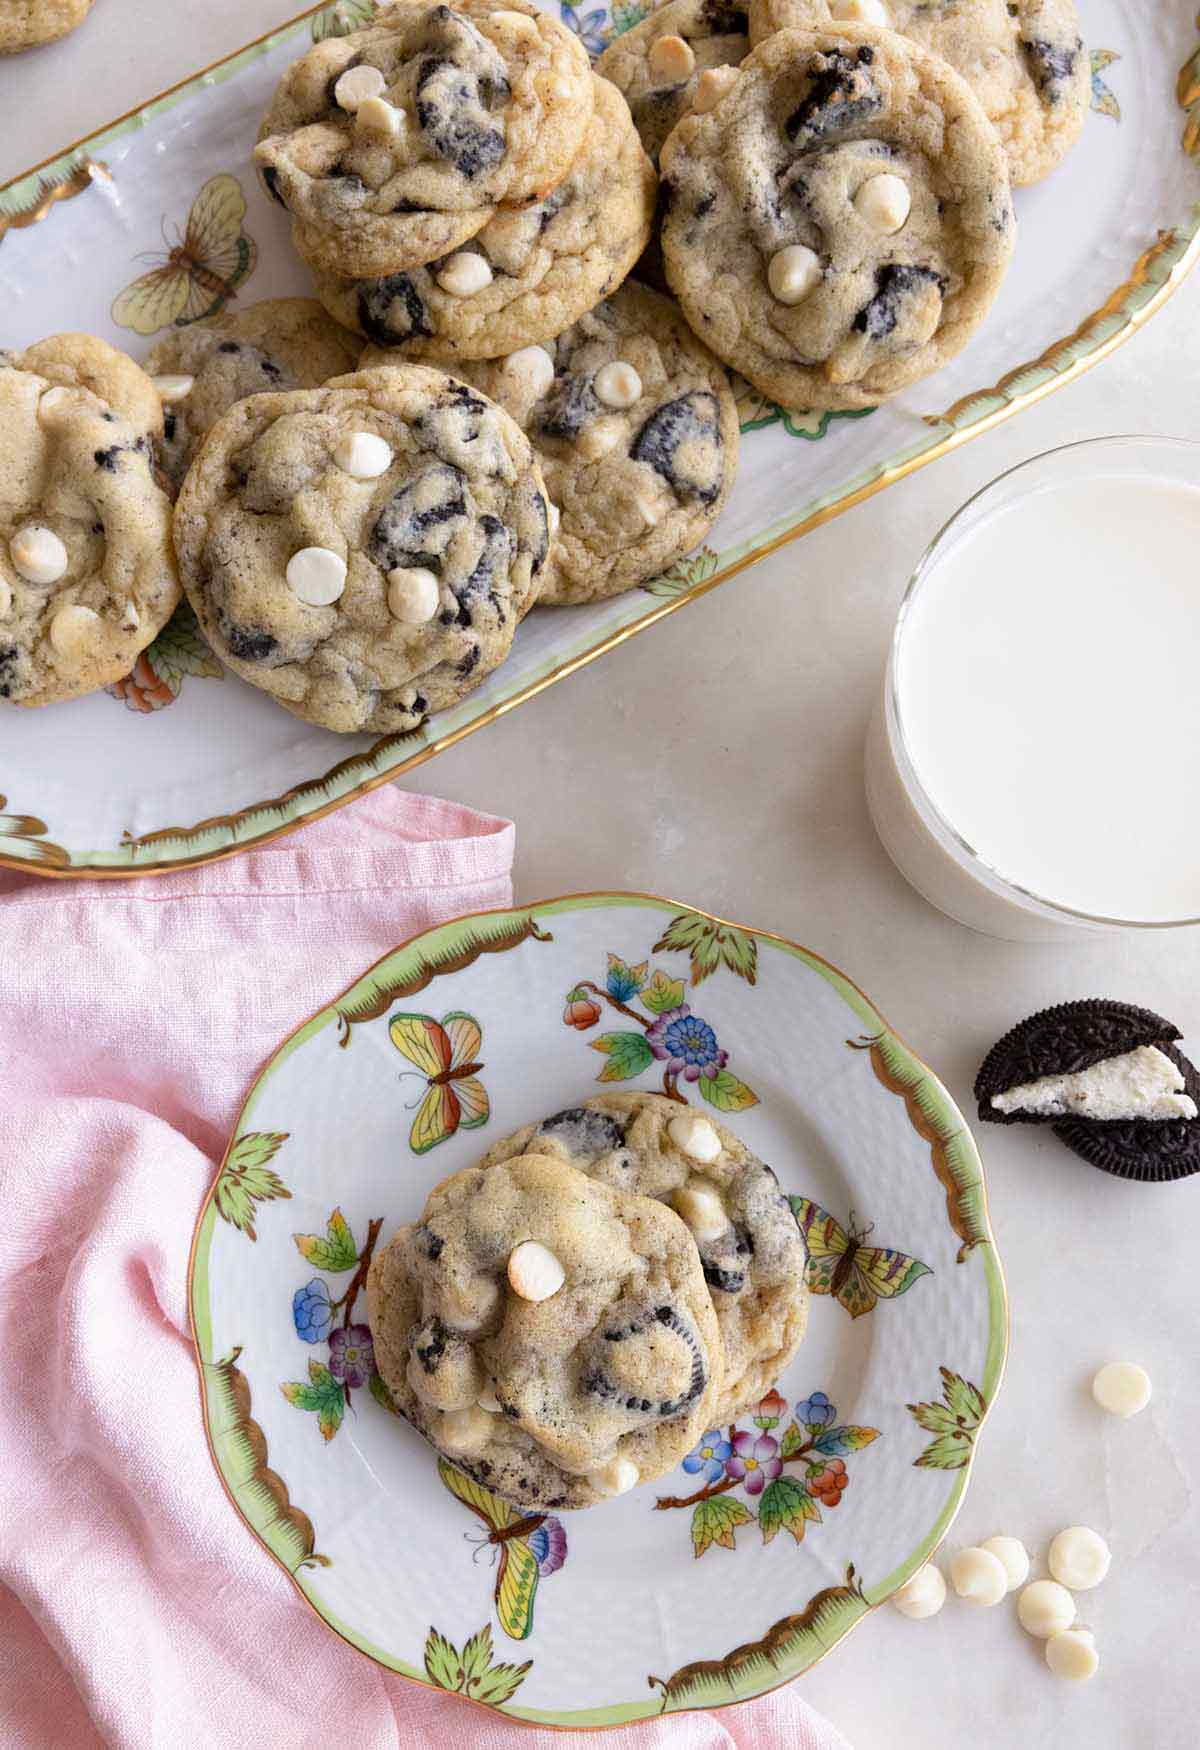 Overhead view of a serving platter of cookies and cream cookies with a small plate of them off to the side with a glass of milk.